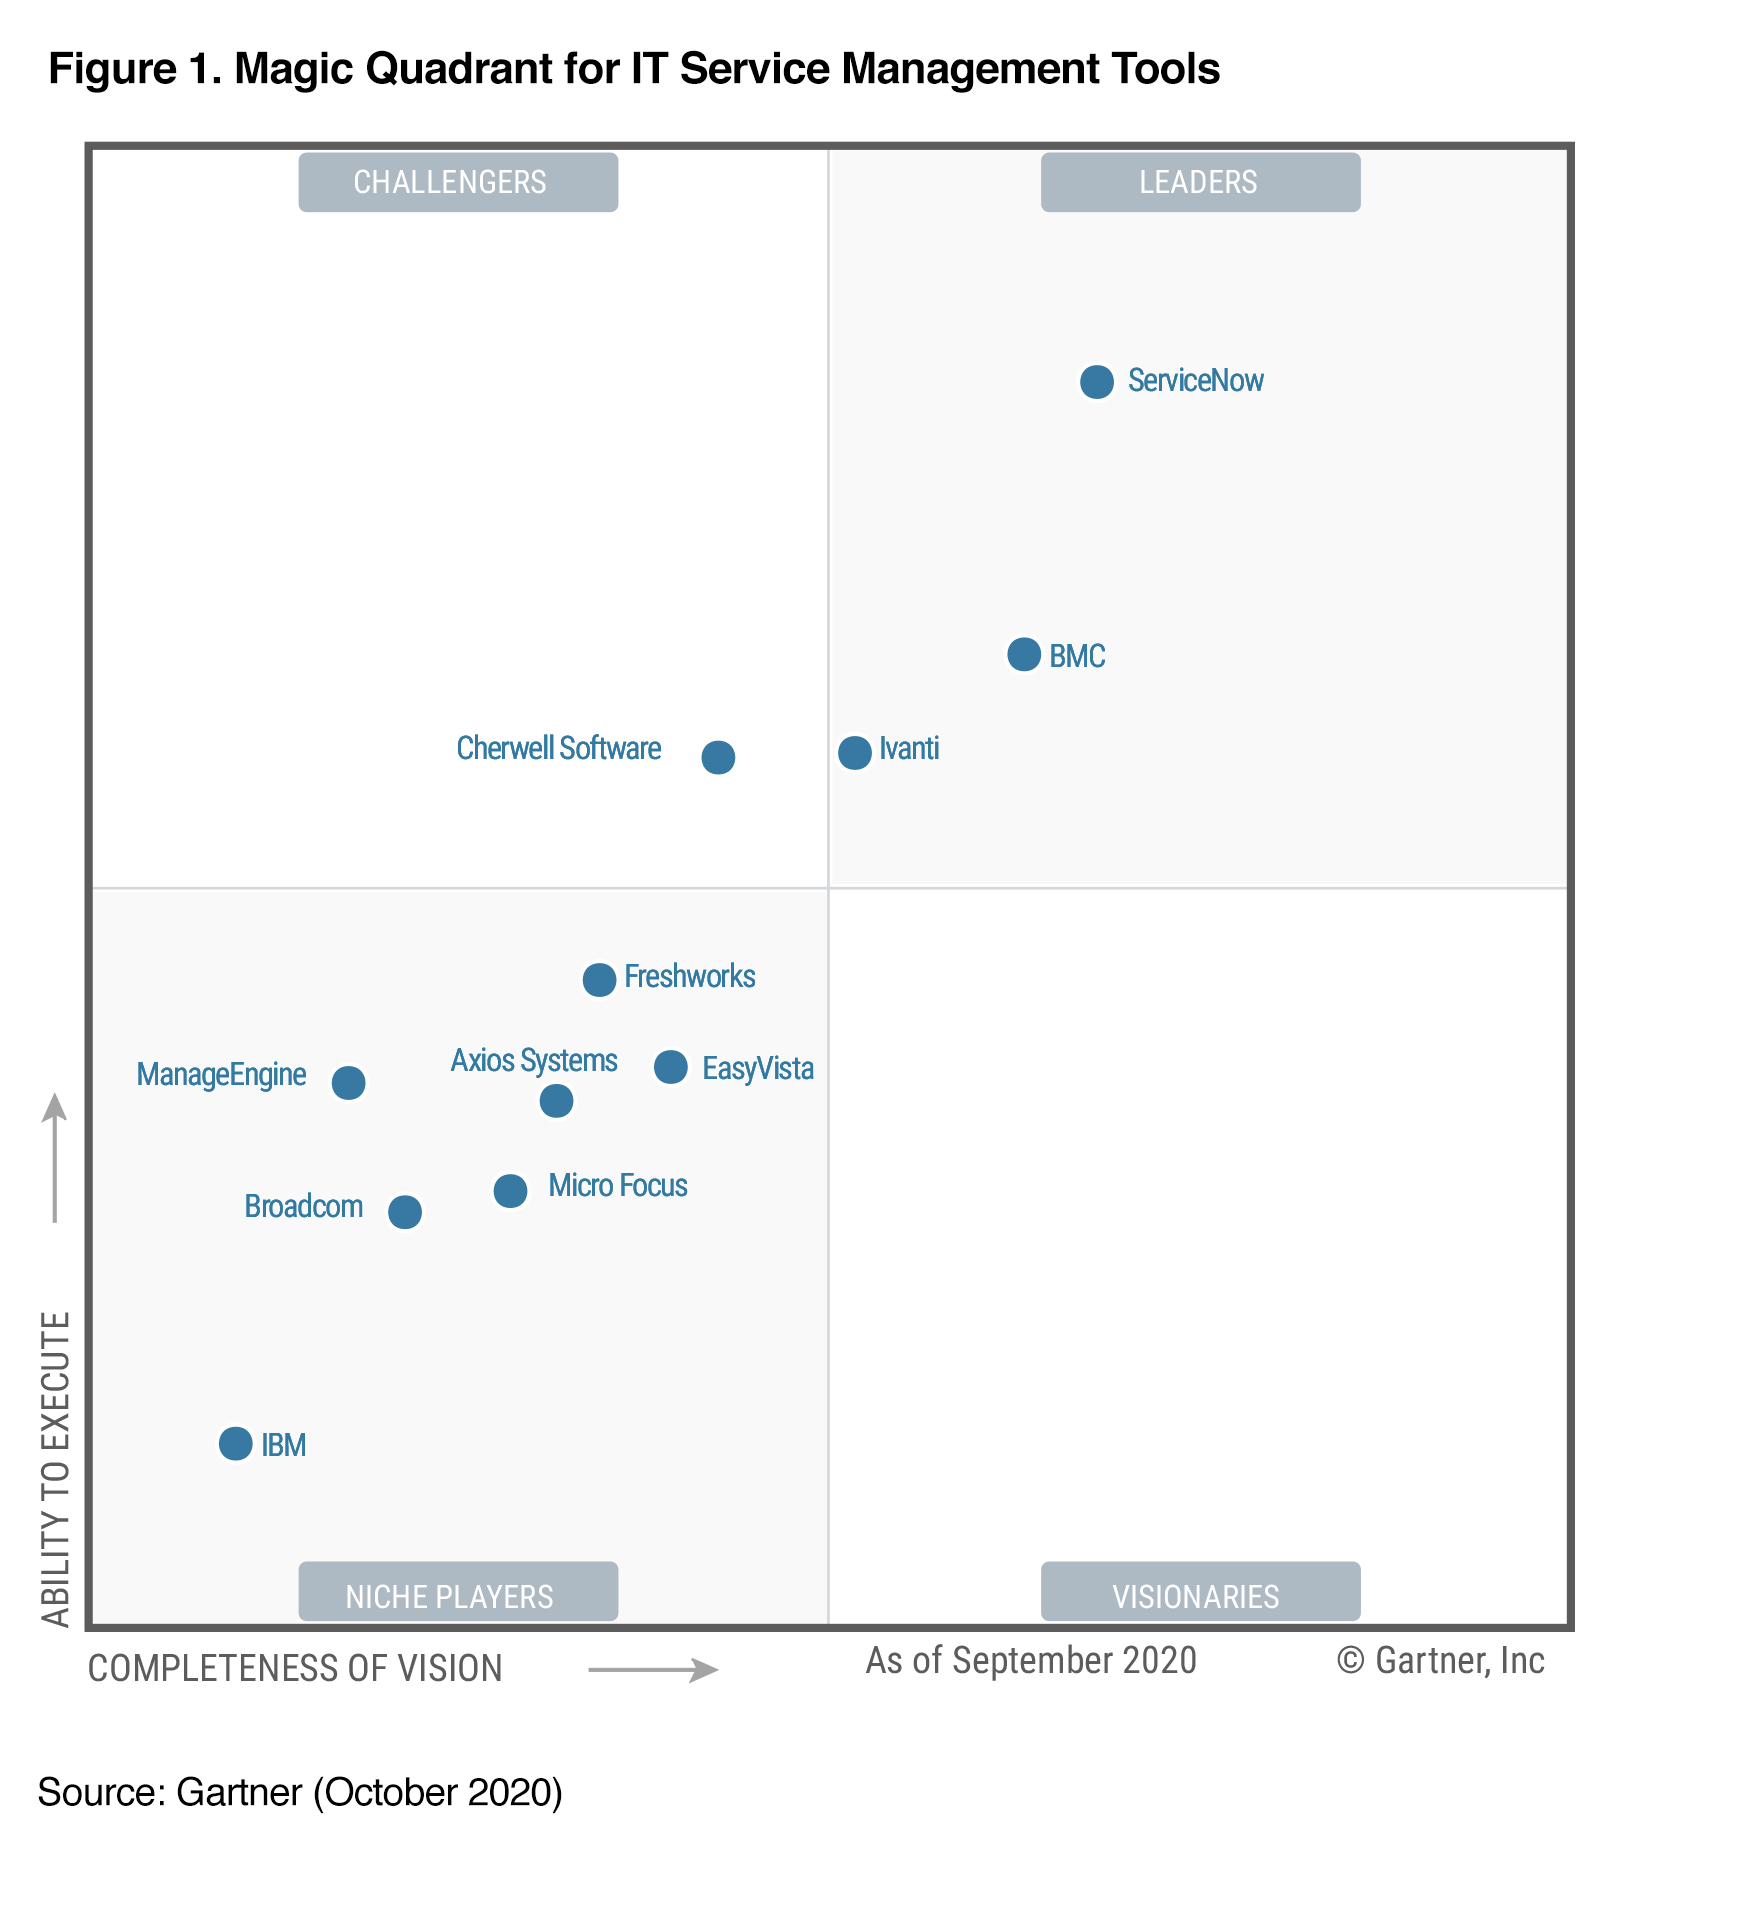 2020 Gartner magic quadrant for ITSM tools